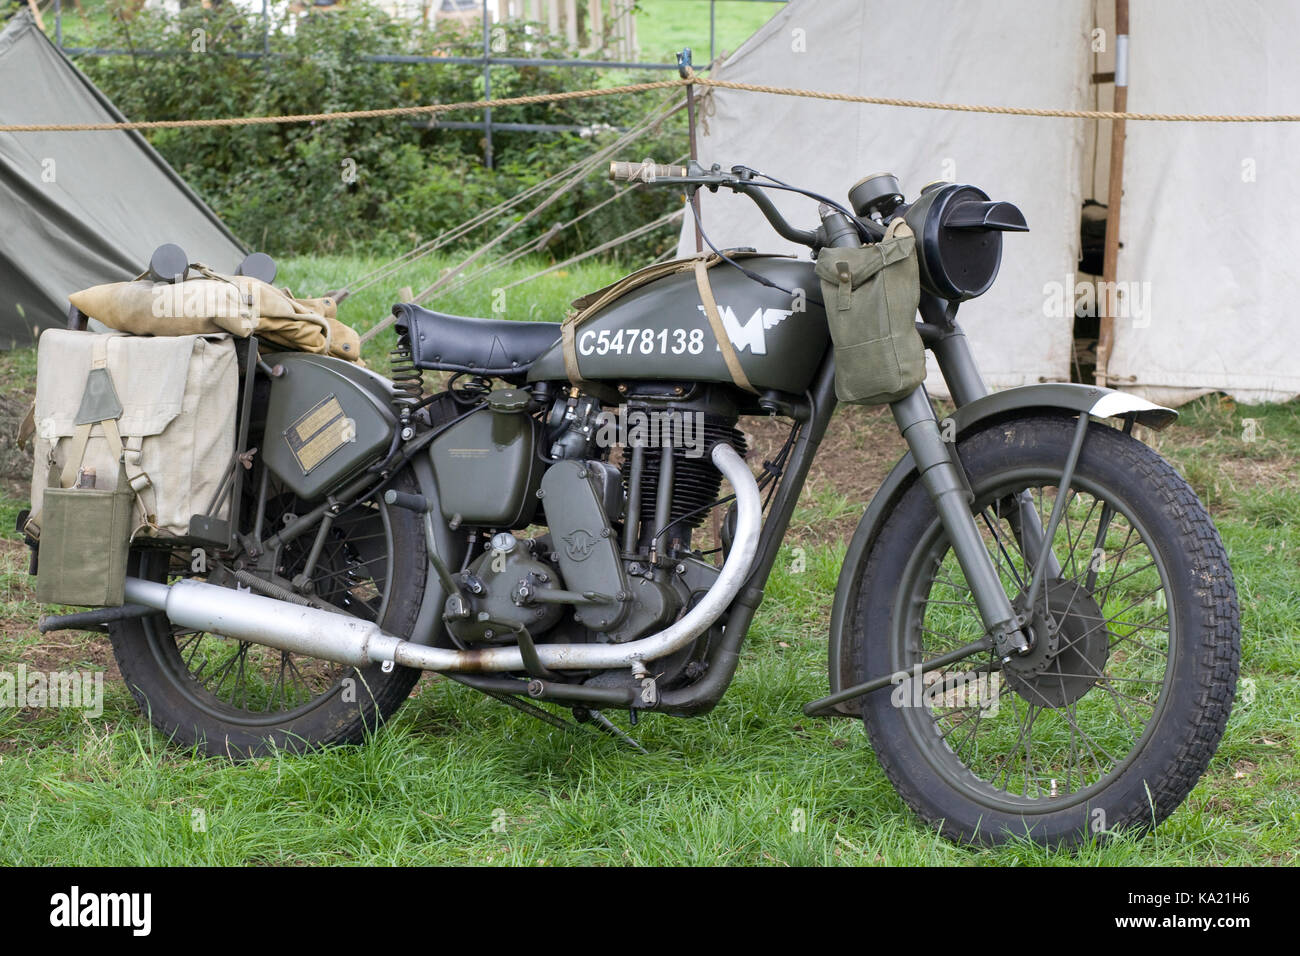 Matchless, one of the oldest marques of British motorcycles from WW11 - Stock Image